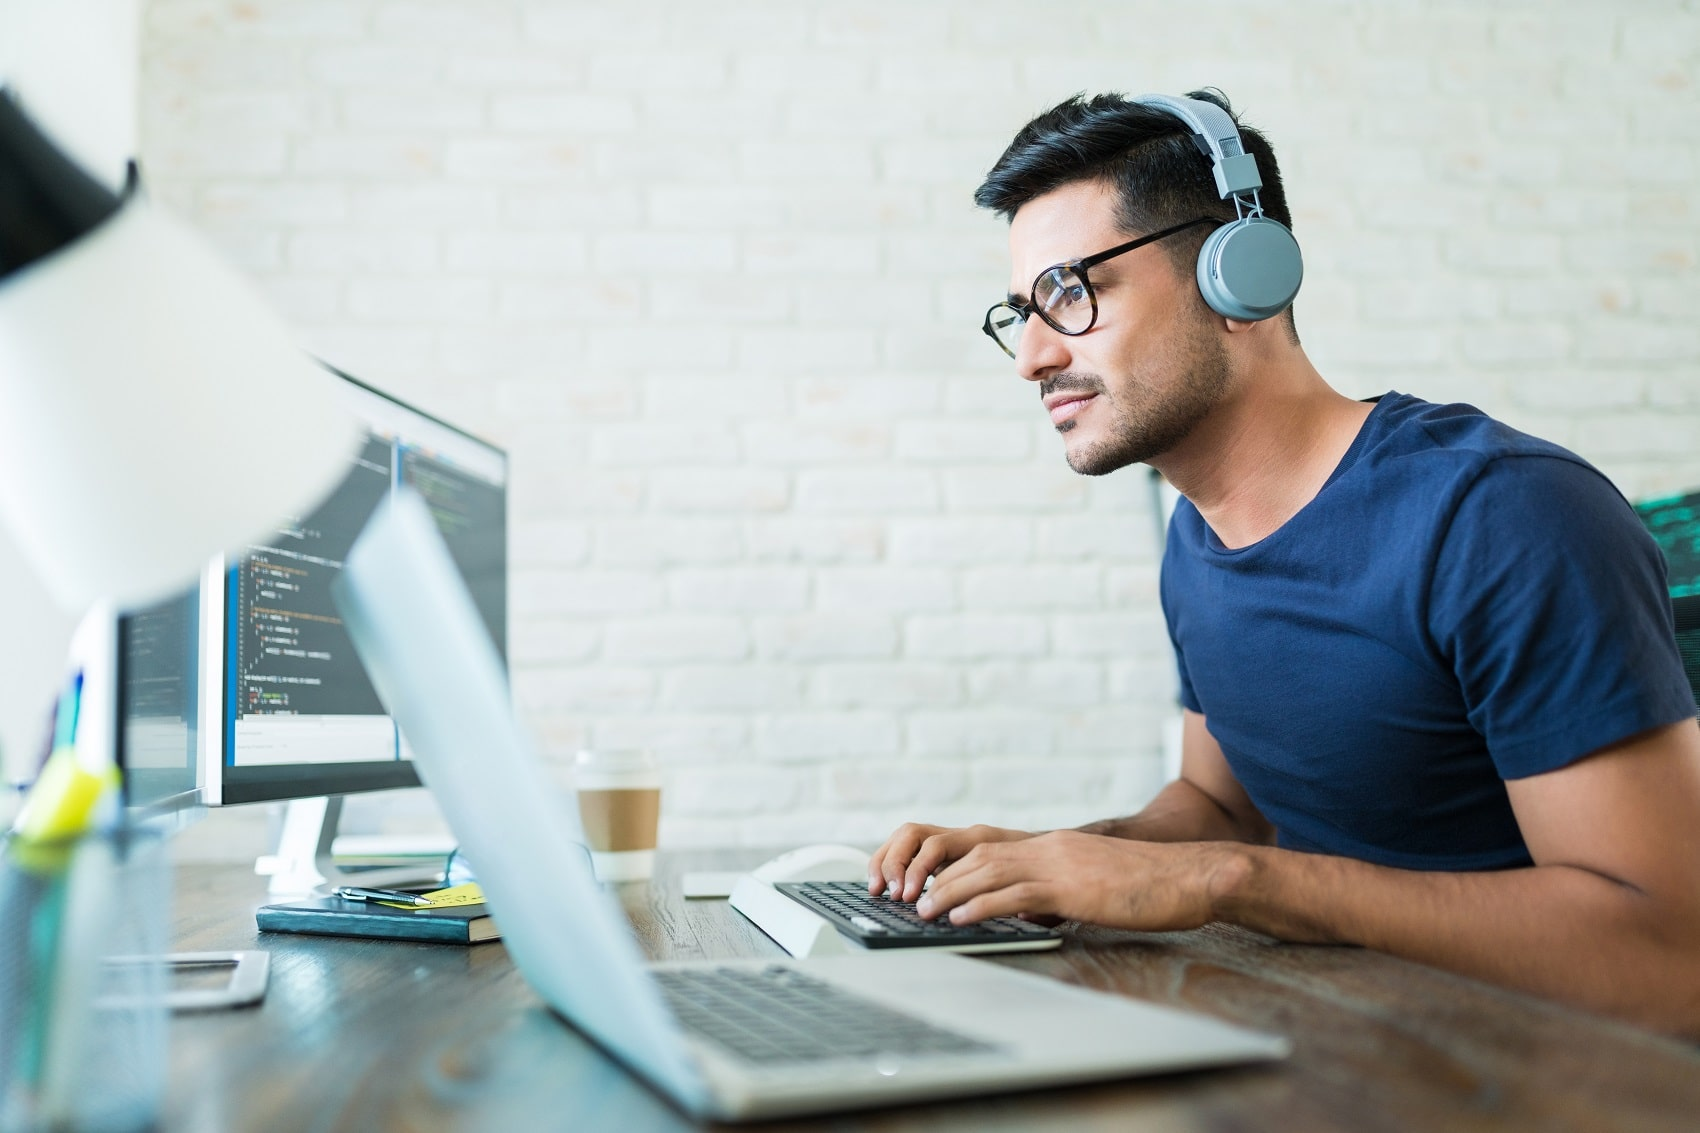 Software developer programming at desk, wearing headphones